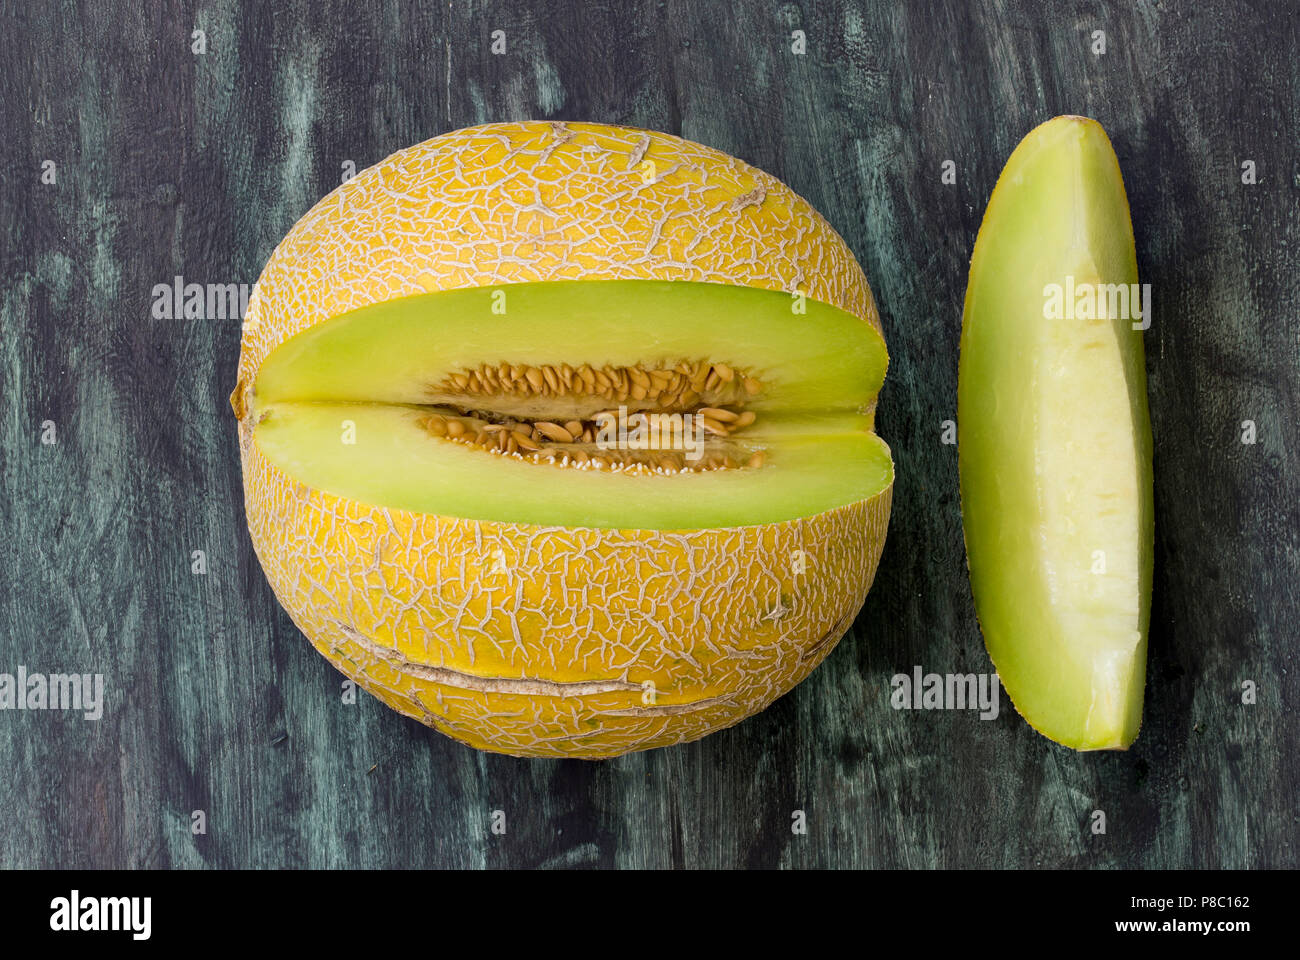 Fresh cantaloupe cut into pieces on wooden table.Directly above view. - Stock Image